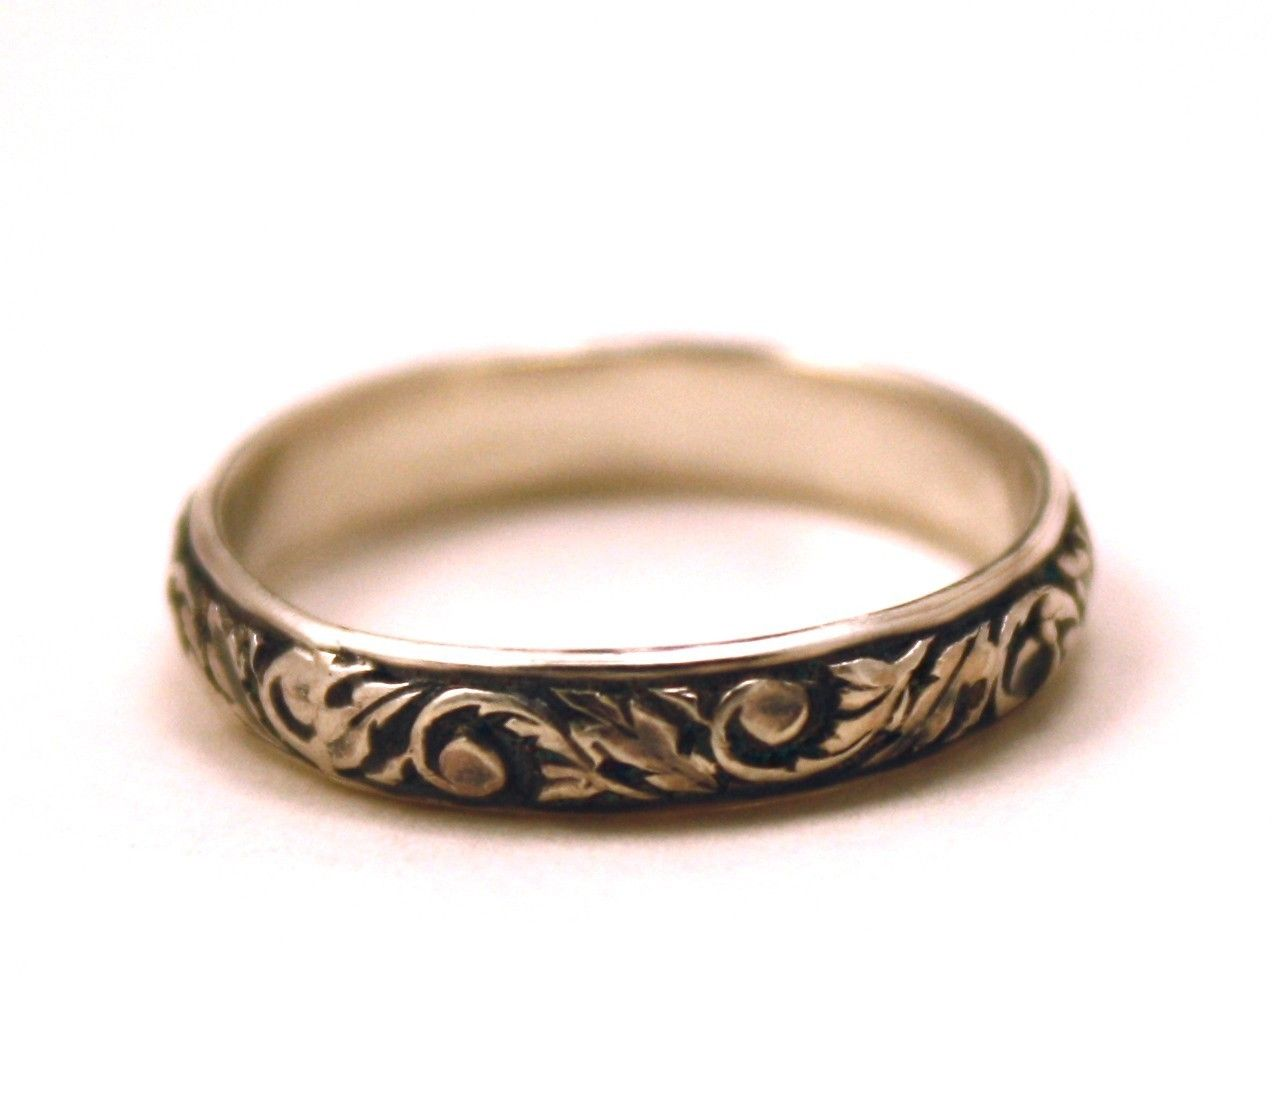 Wedding Ring Vintage Antique Look Fl Scroll Leaf Design Sterling Silver Free Engraving